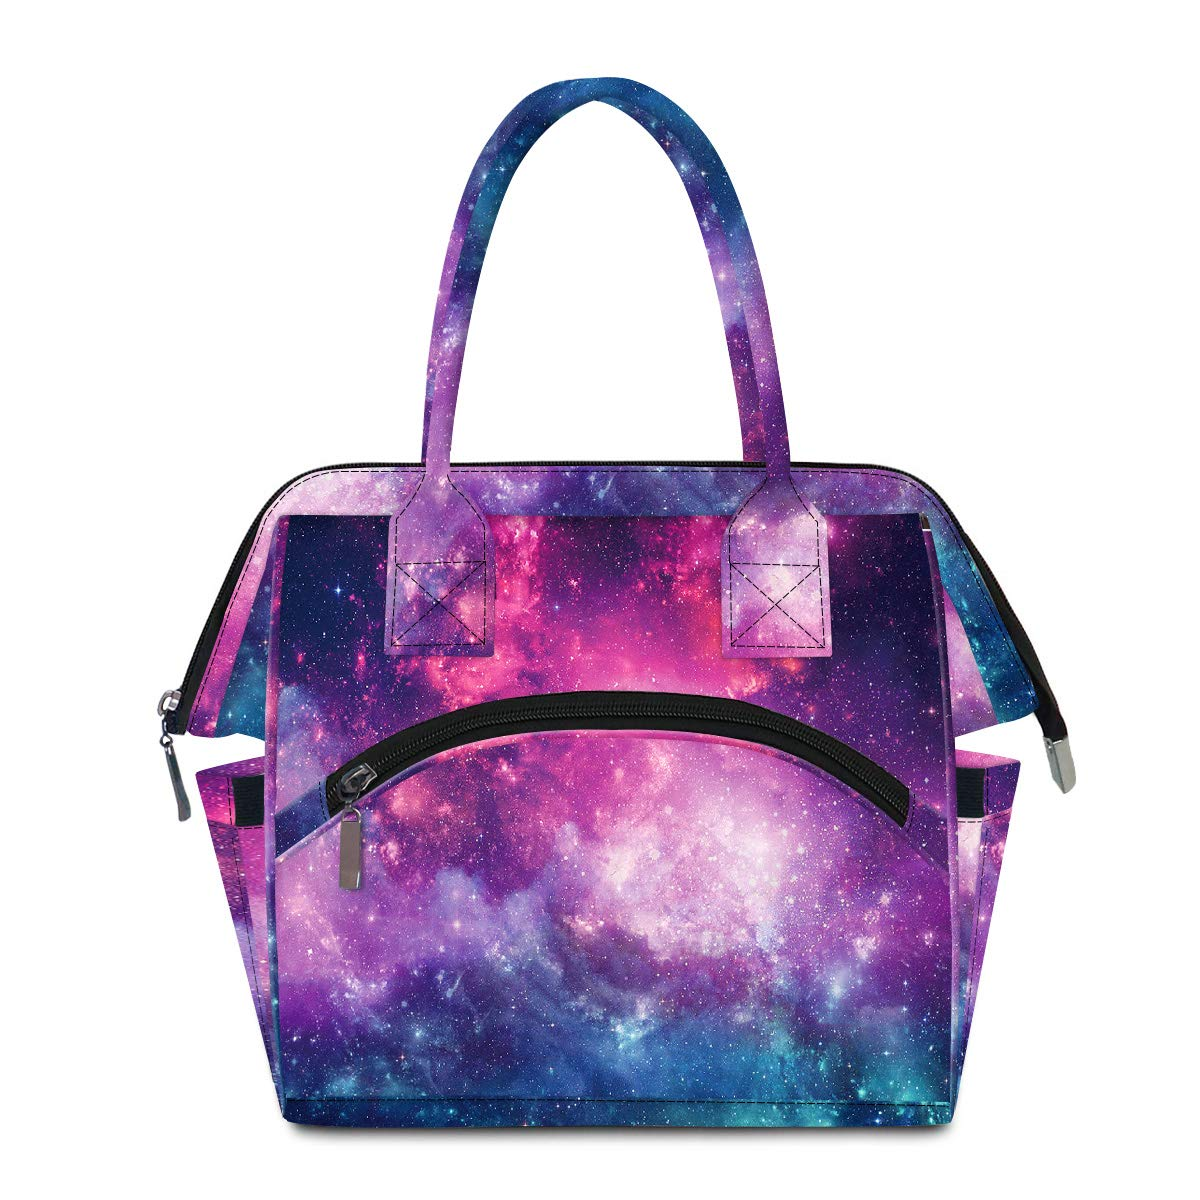 Galaxy Lunch Bag for Womens Lunch Box Water-Resistant Insulated Lunch Container for Work/School/Office/BBQ